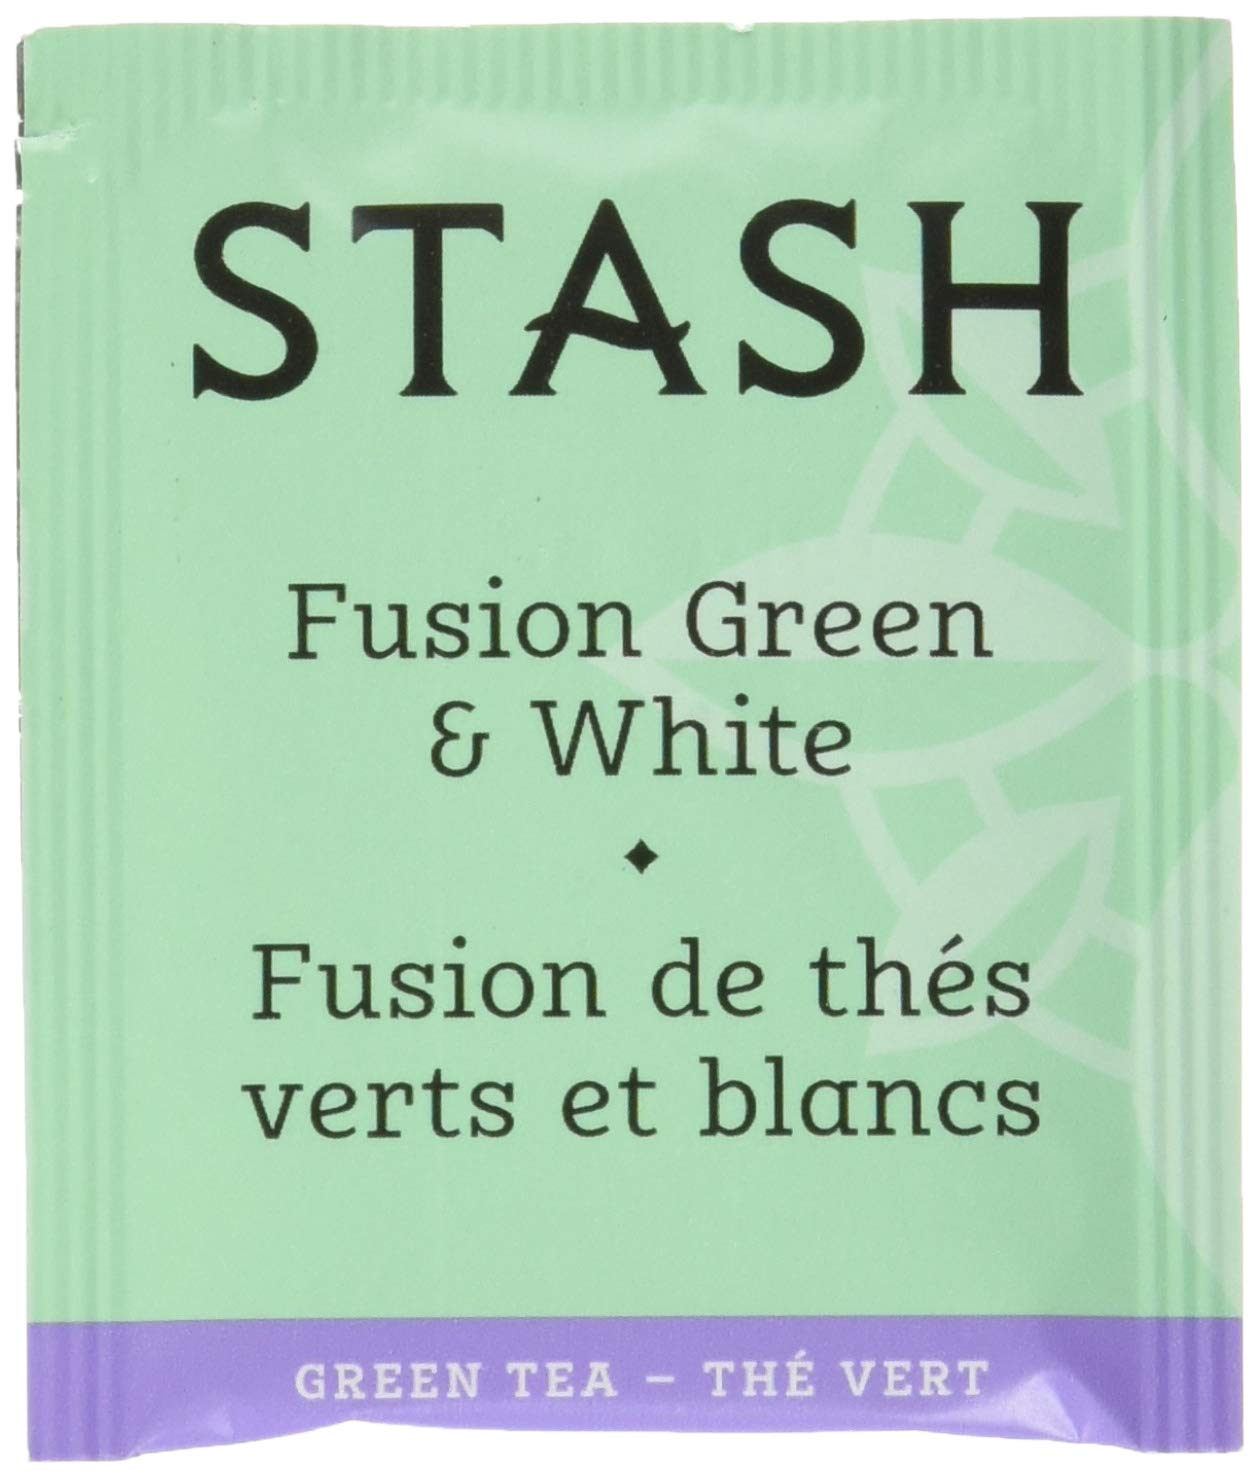 Stash Tea Fusion Green & White Tea 100 Count Tea Bags in Foil (Packaging May Vary) Individual Tea Bags for Use in Teapots Mugs or Cups, White Tea and Green Tea, Brew Hot or Iced by Stash